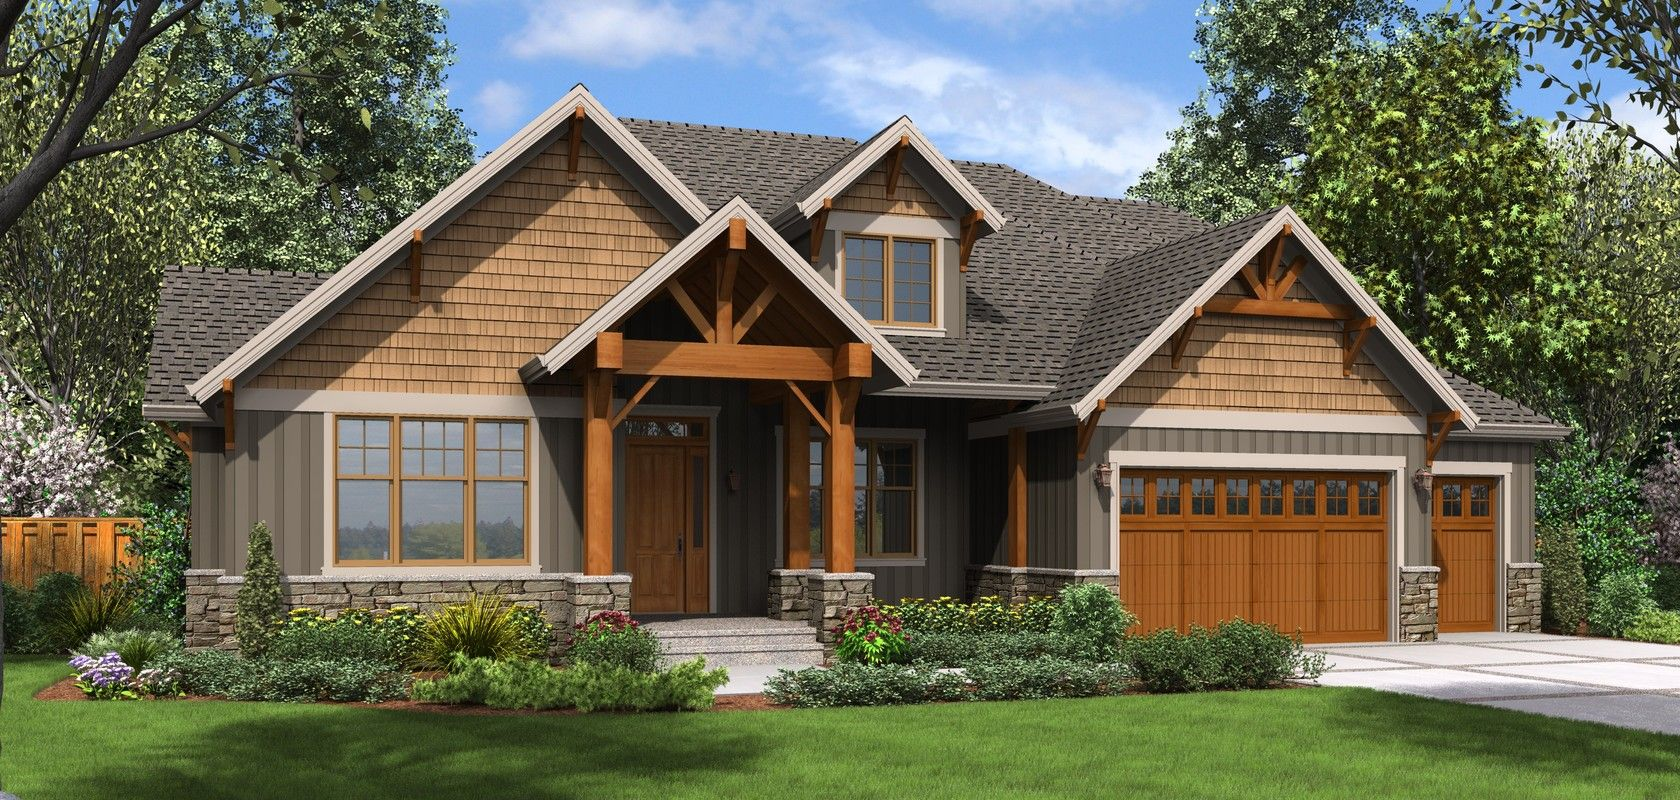 Mascord plan 23111 the edgefield dream home pinterest for Mascord plans